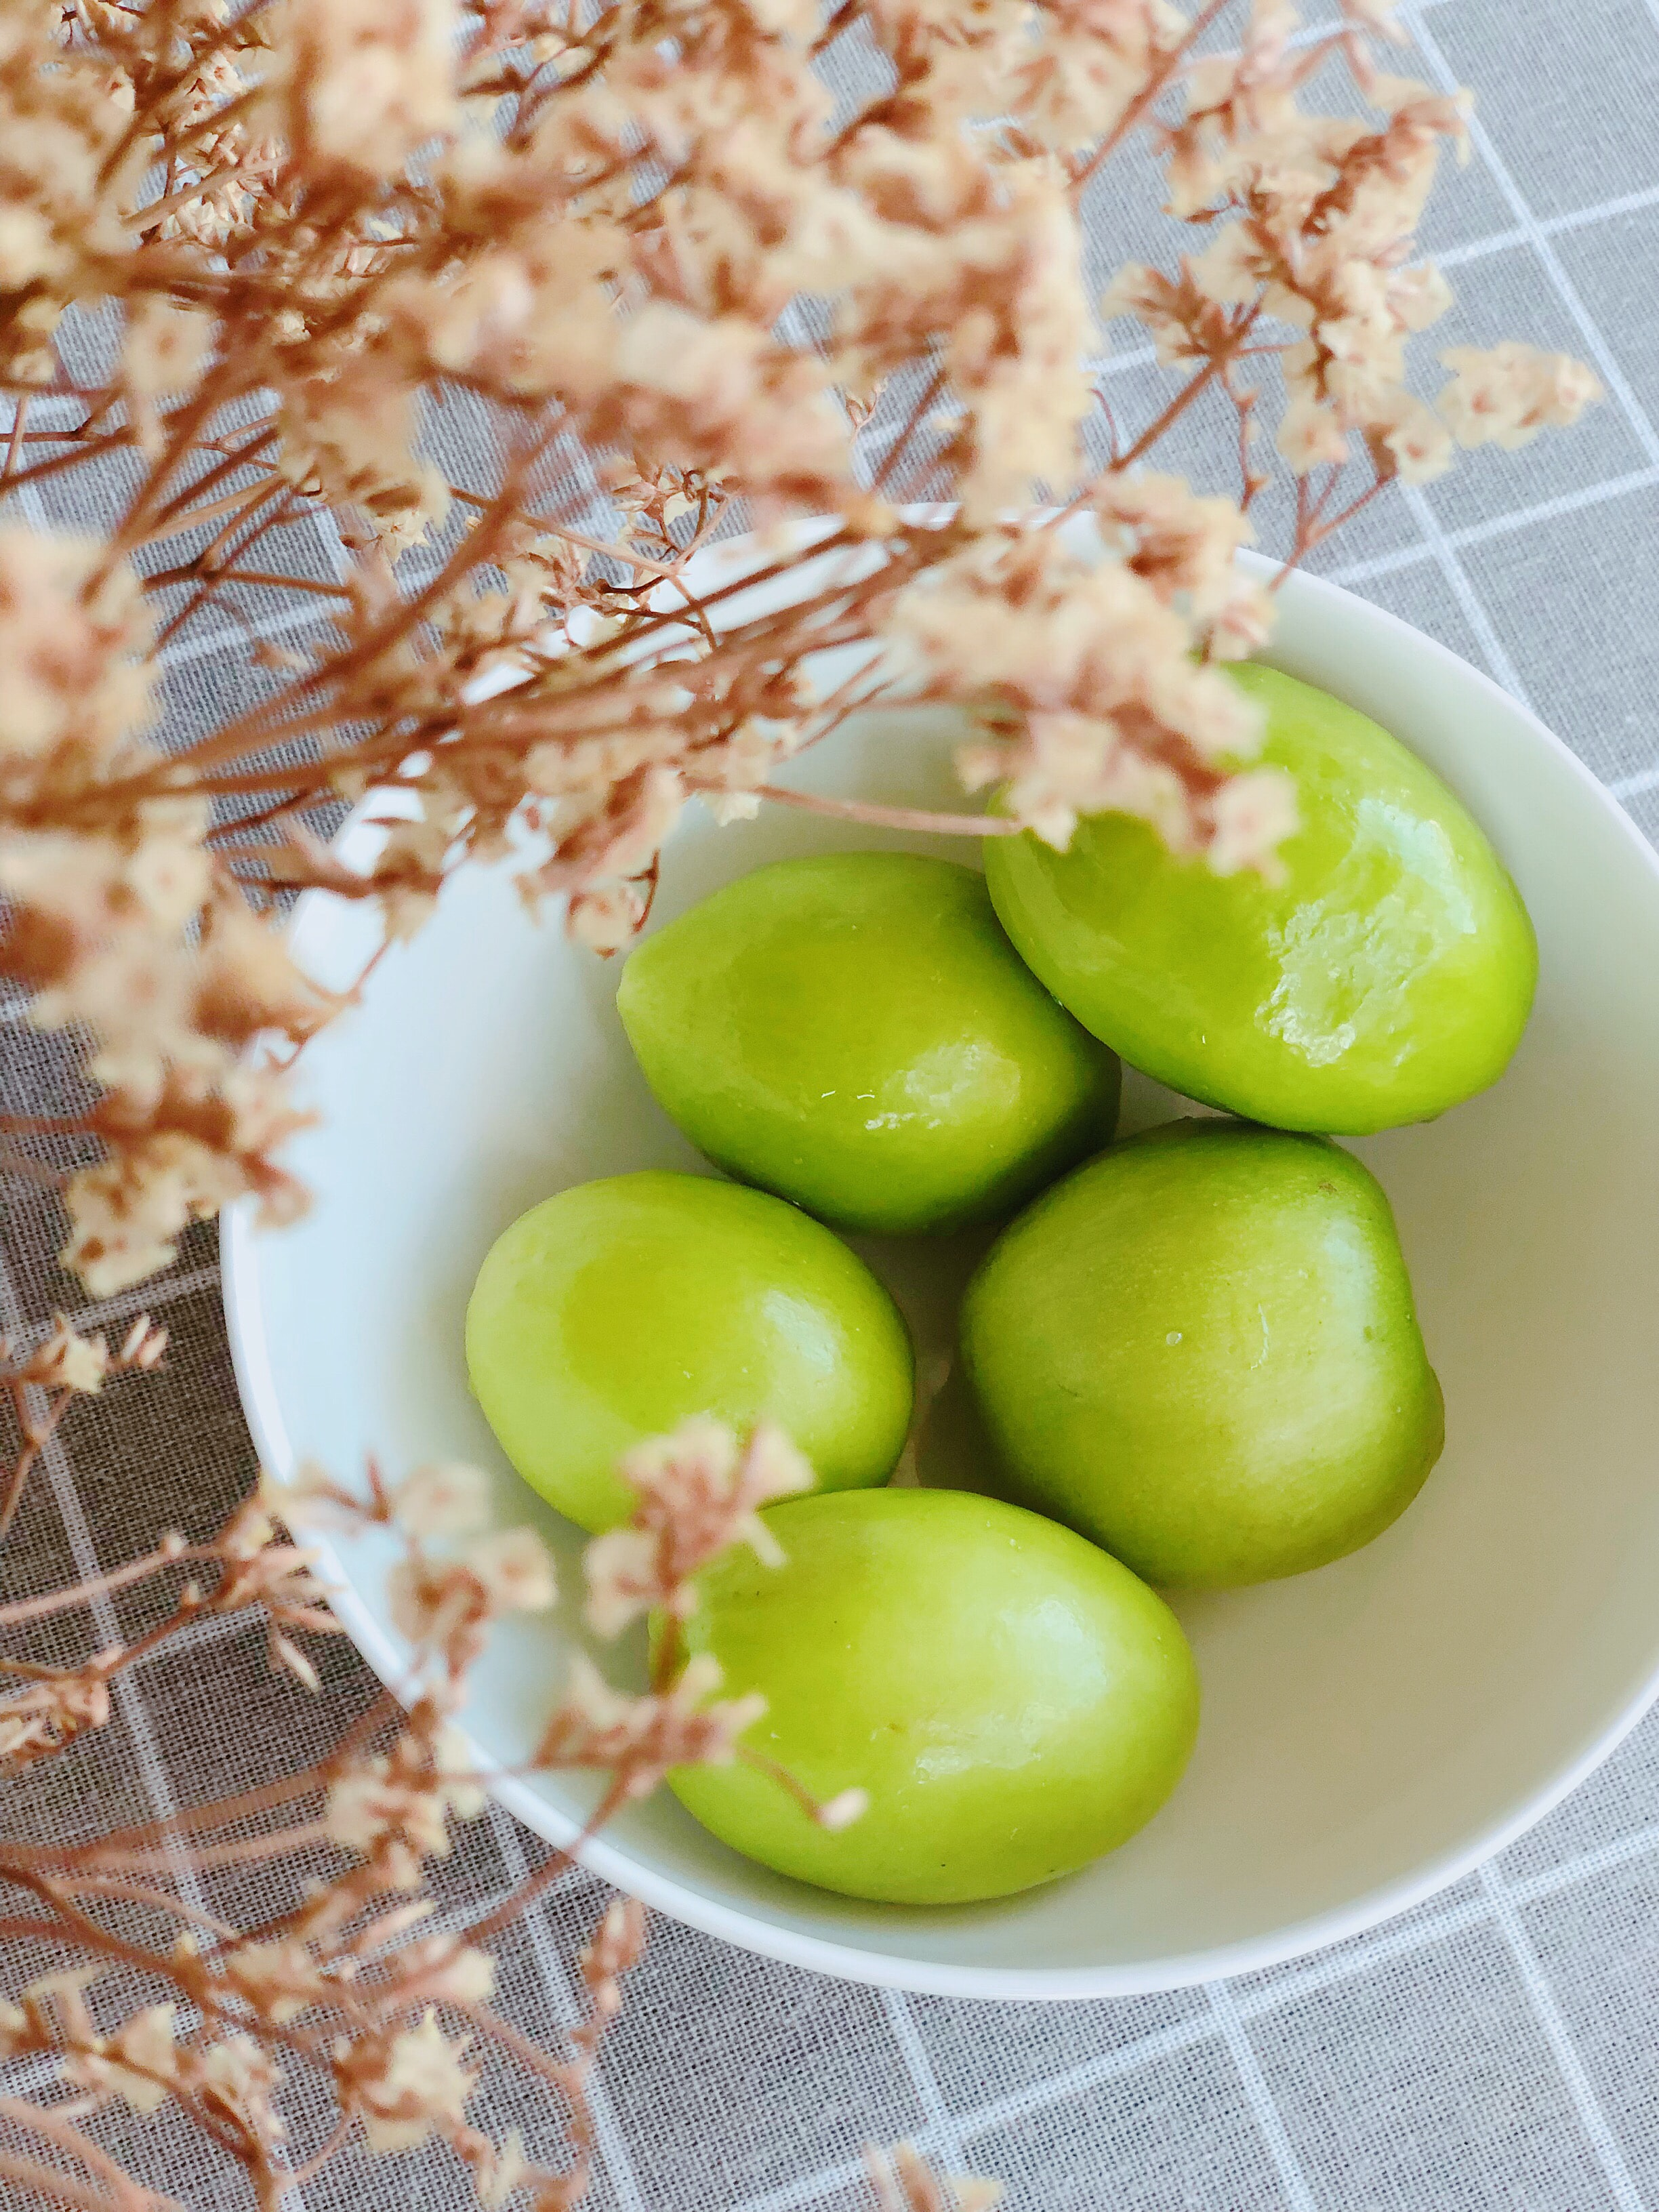 five limes in bowl